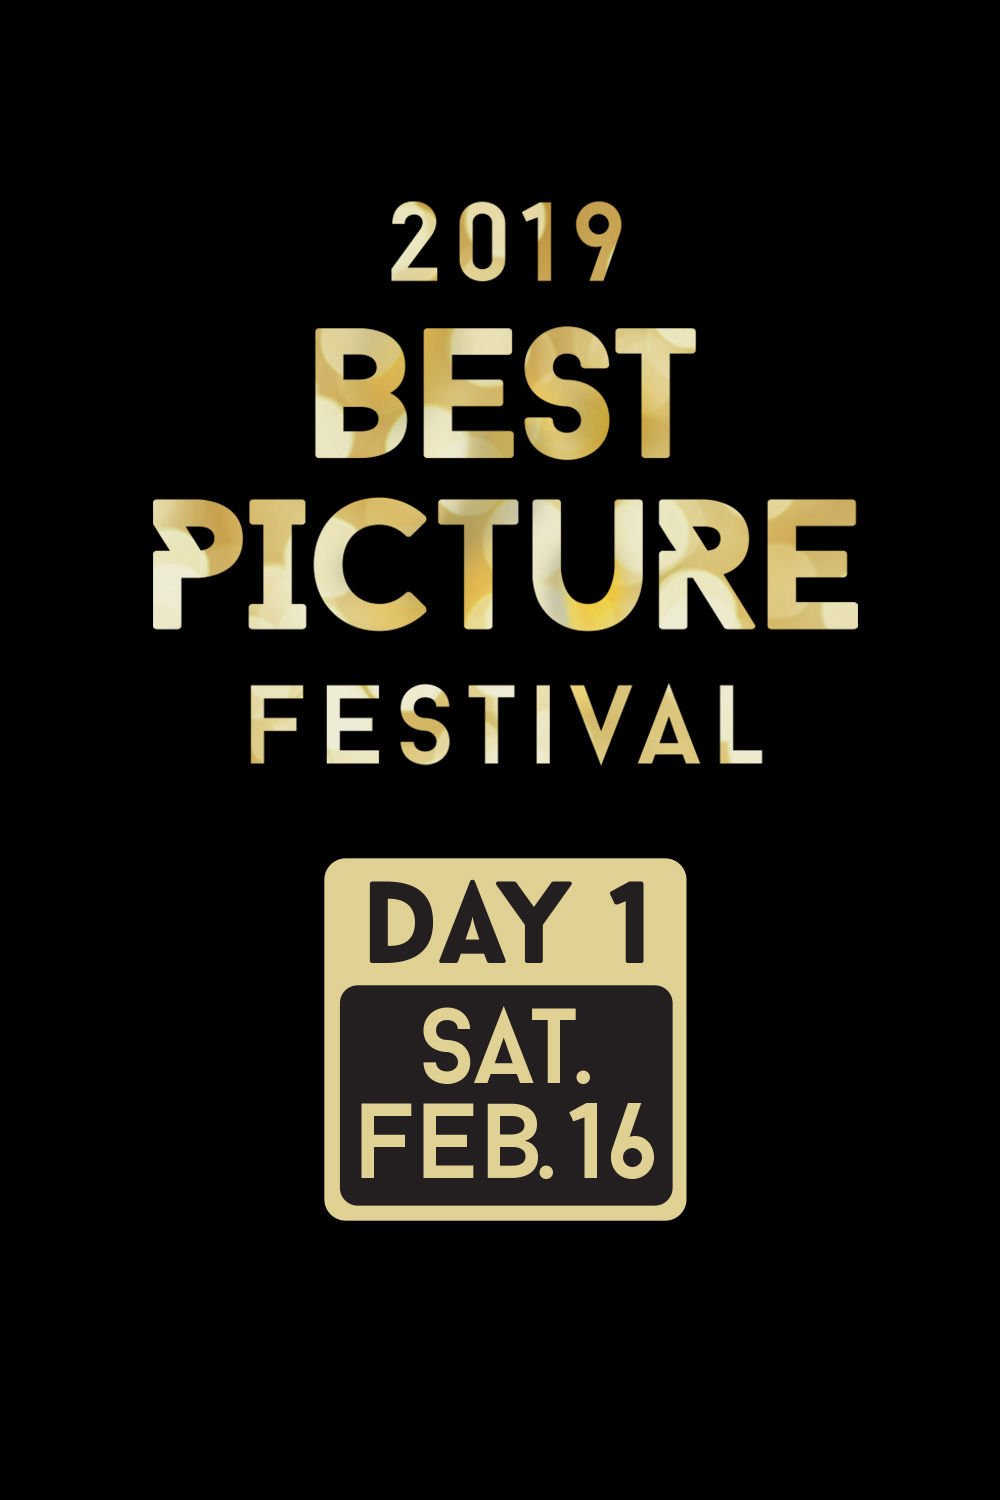 Best Picture Fest 2019: Day 1